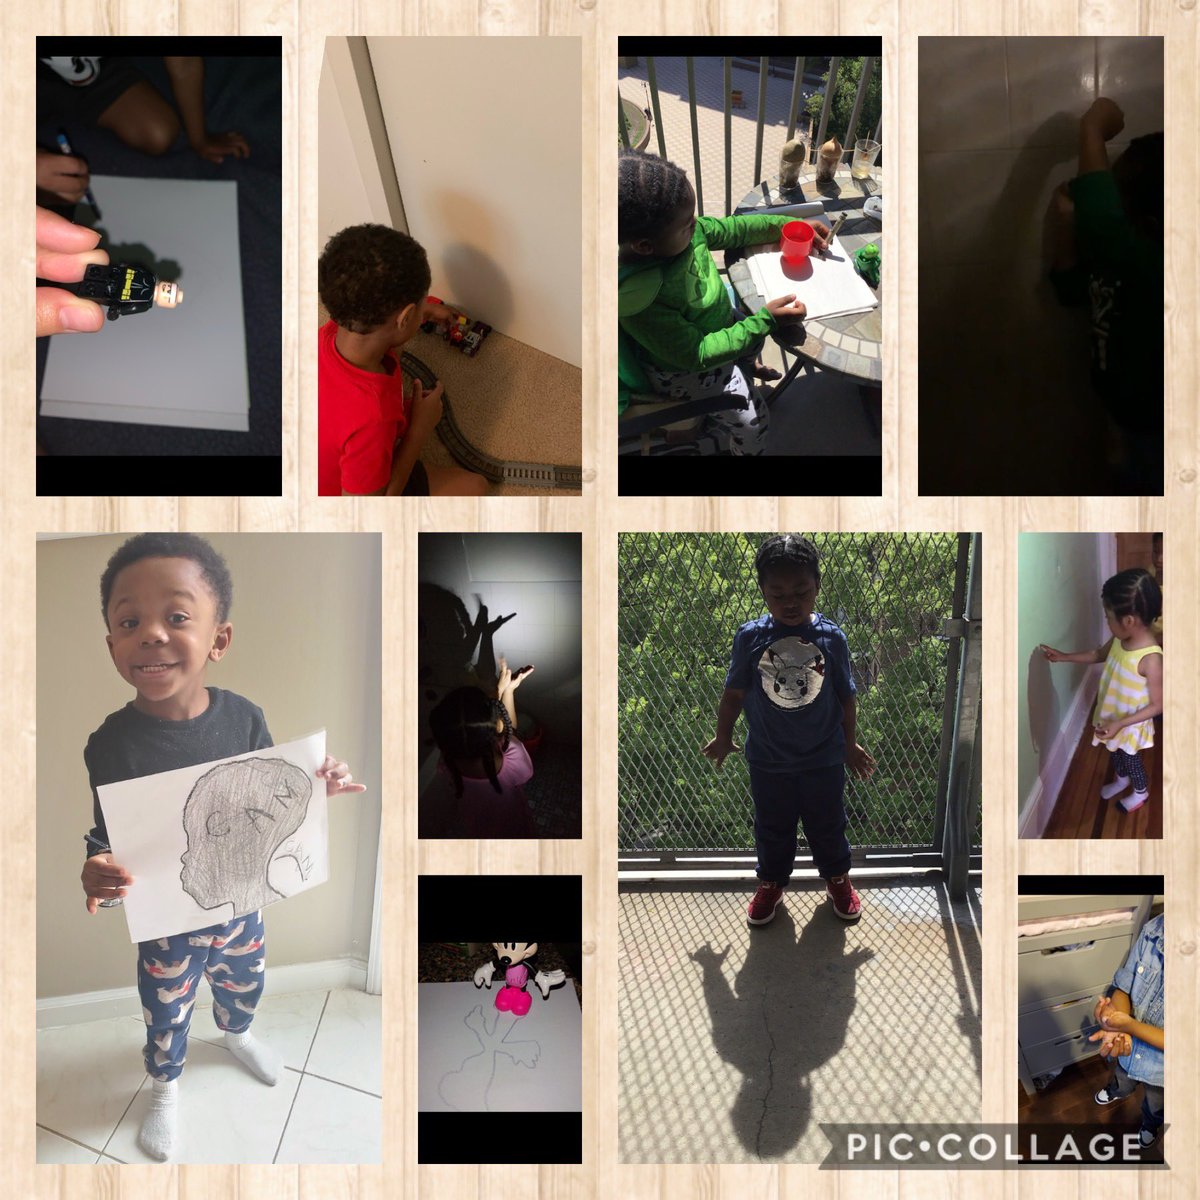 It's #WonderfulWednesday at @TheRichmondPrek! Our students in Ms. Angela's #scienceclass from Stuyvesant site are learning about light and shadows. #Science #sciencefromhome #ScienceMatters @vgallassio @K12readinglist @D31RichmondPreK @DOEChancellor @SIBOD31 #nycschoolspic.twitter.com/hHx93BOrOI